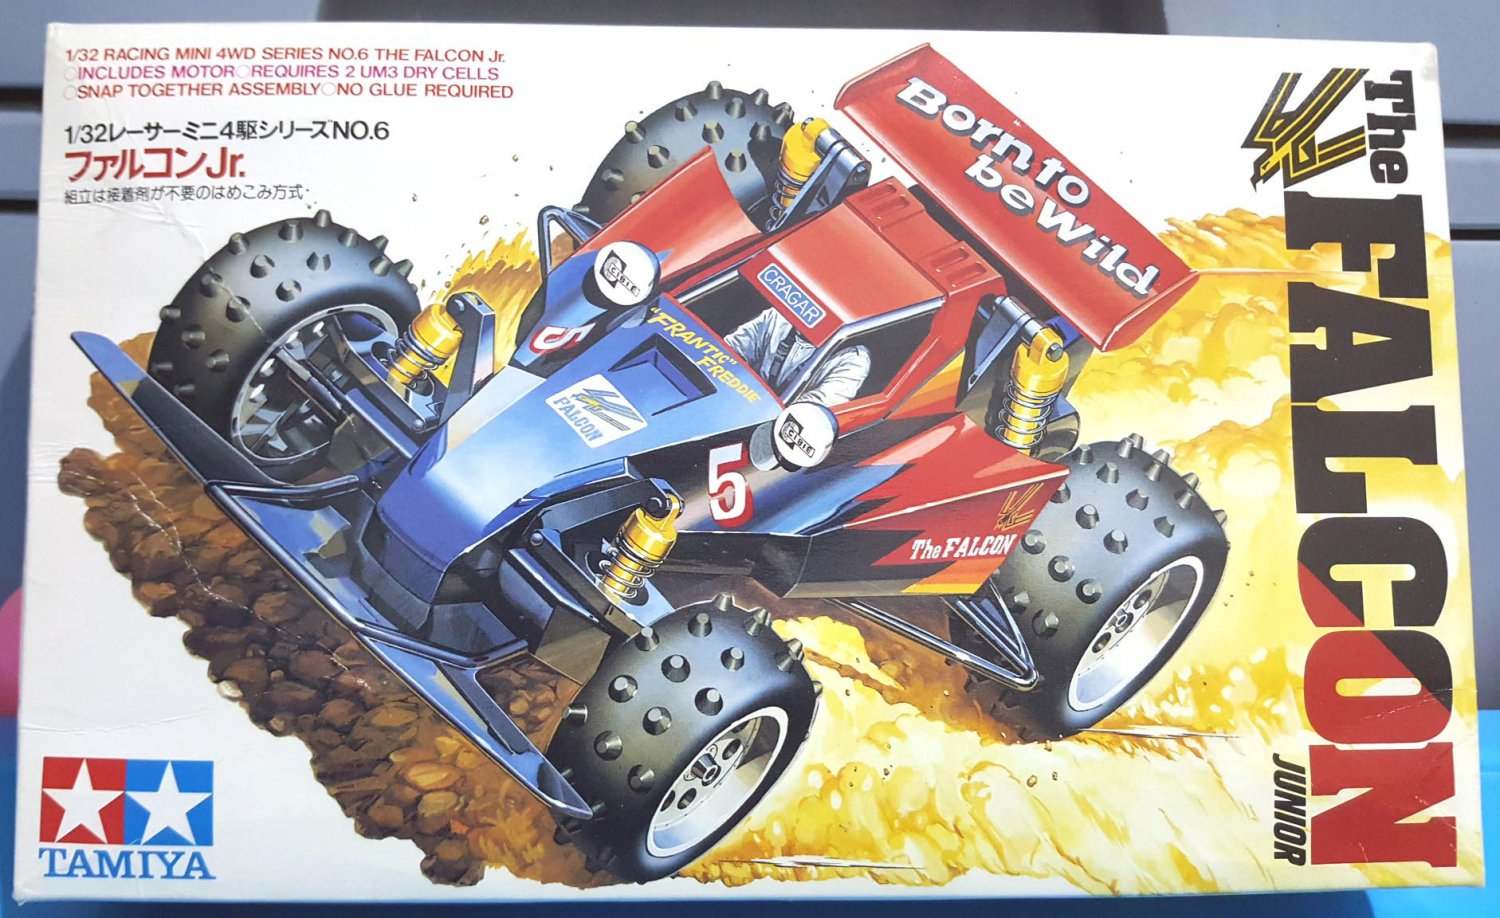 The Falcon Junior Tamiya Mini Racing 4 W/D Scale 1:32 1987 Made In Japan